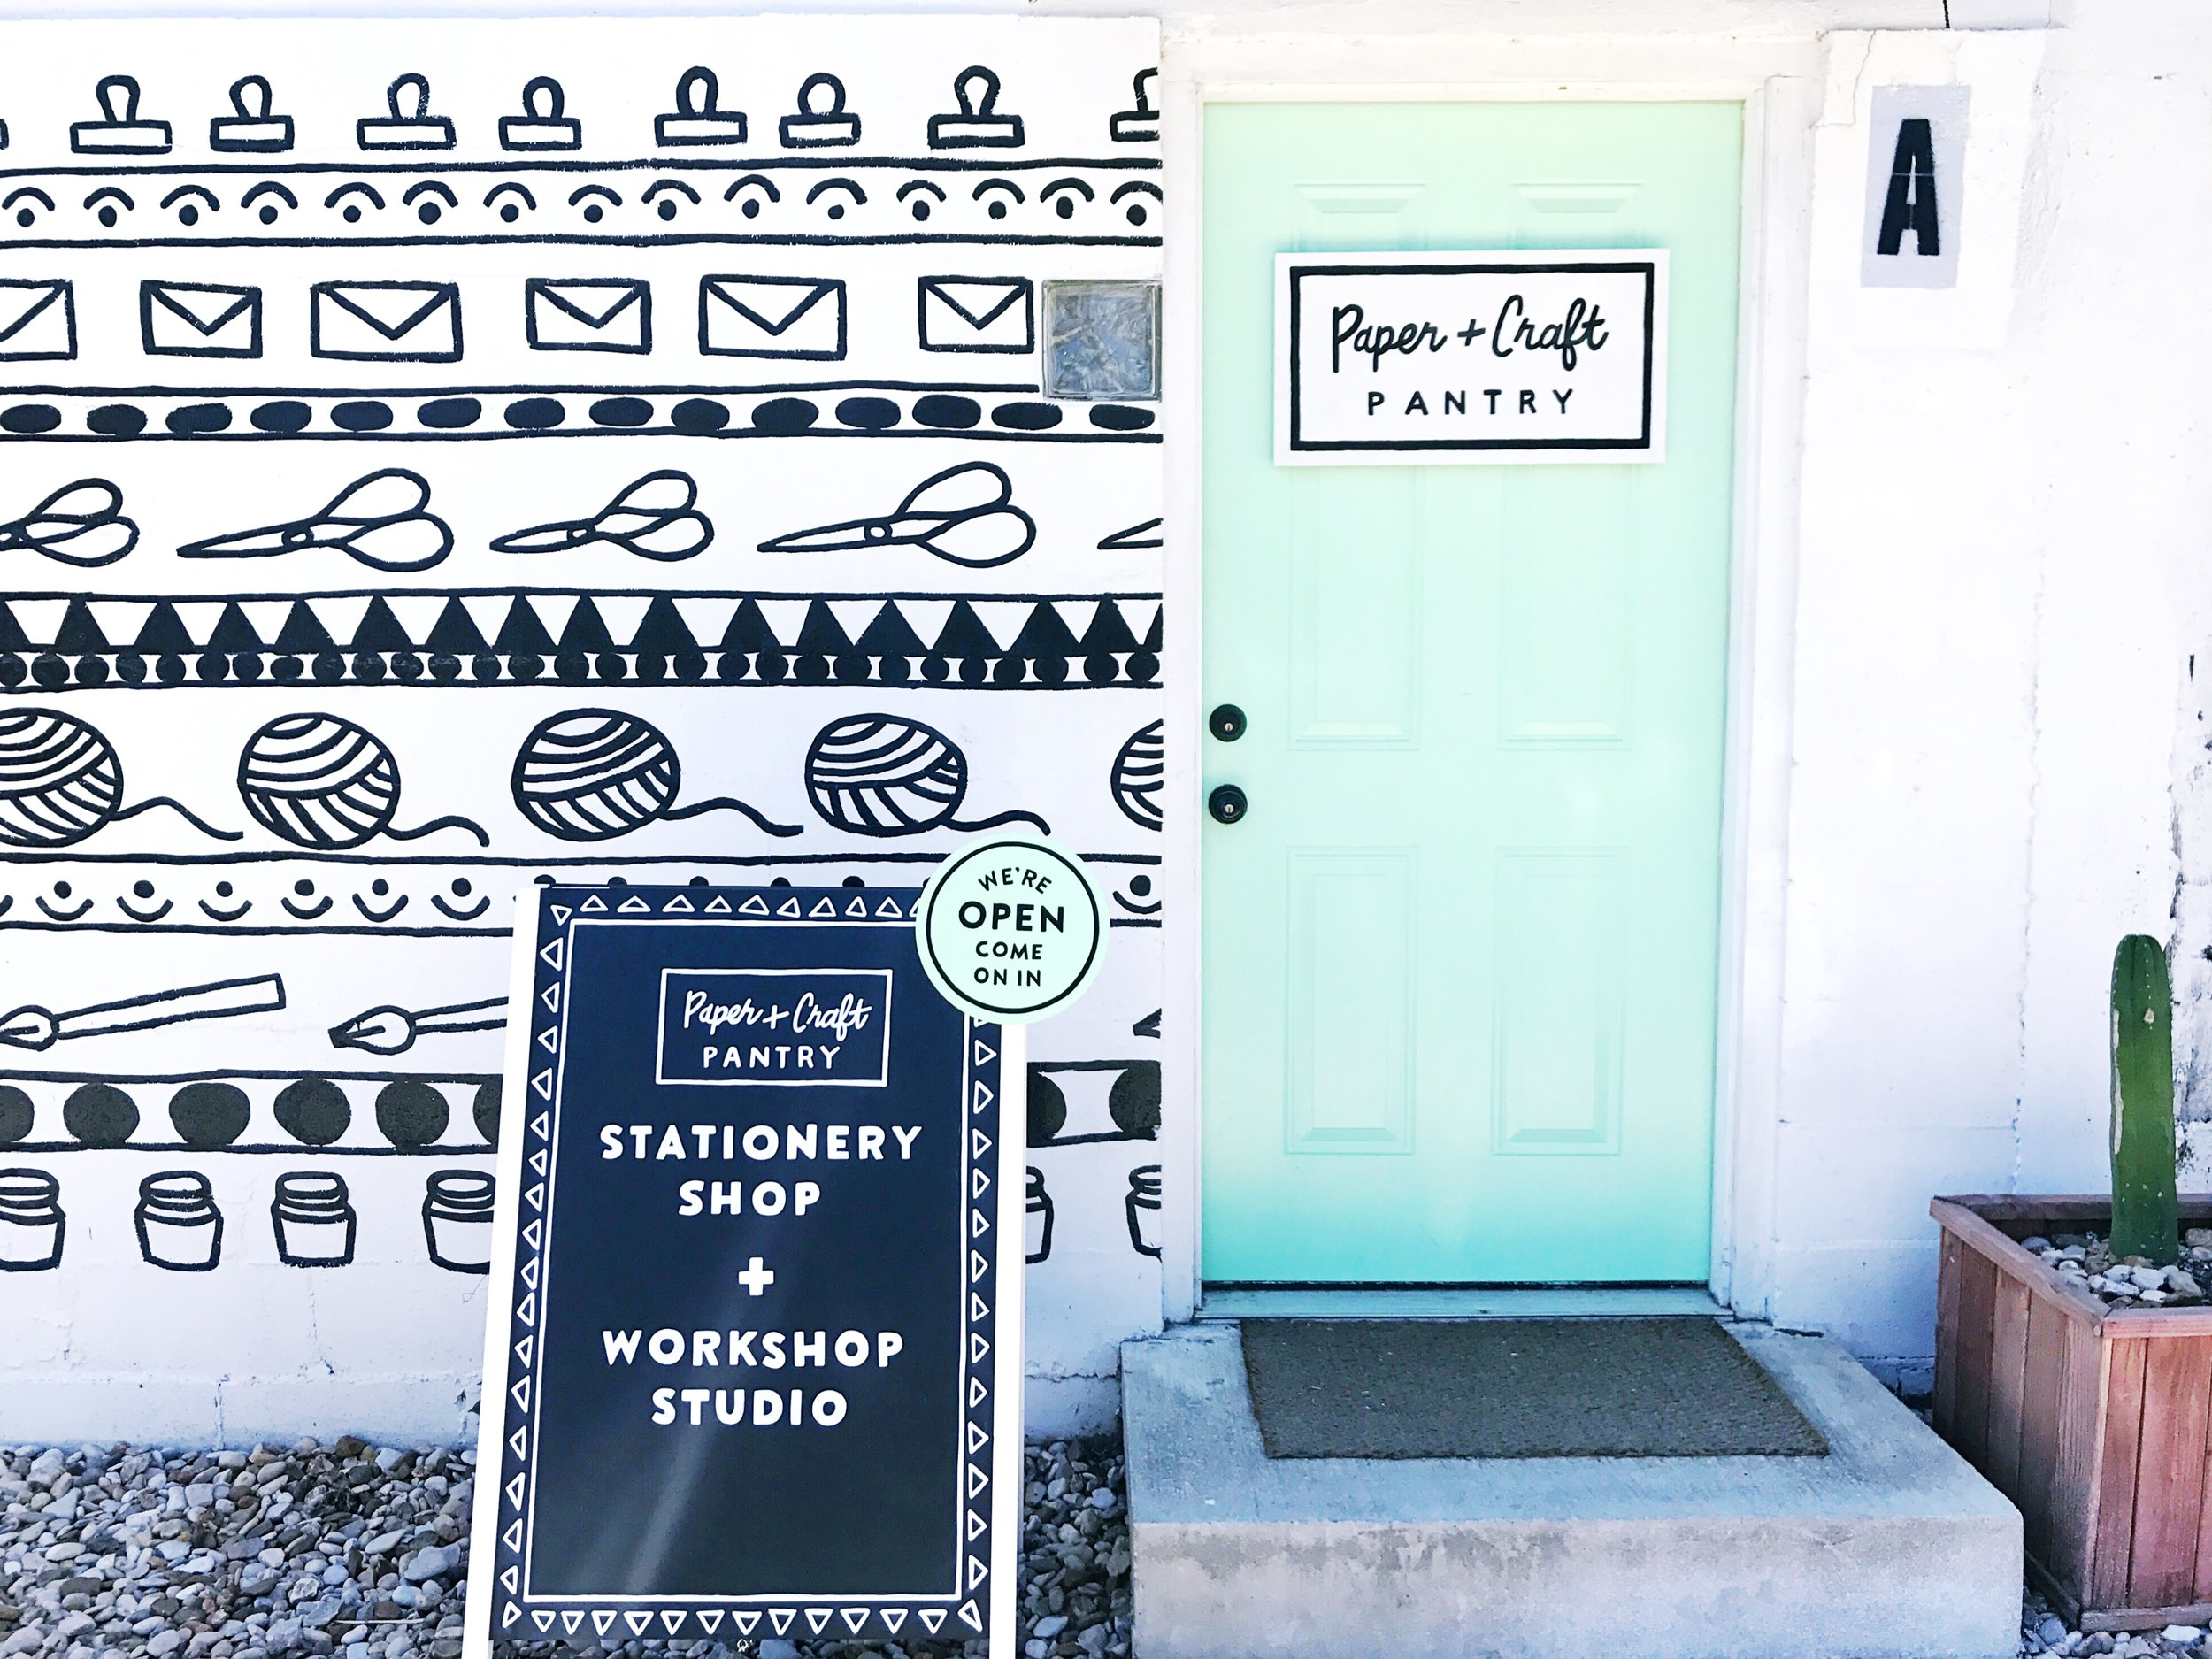 The Paper + Craft Pantry: Austin's Best Stationery Shop and Workshop Classes